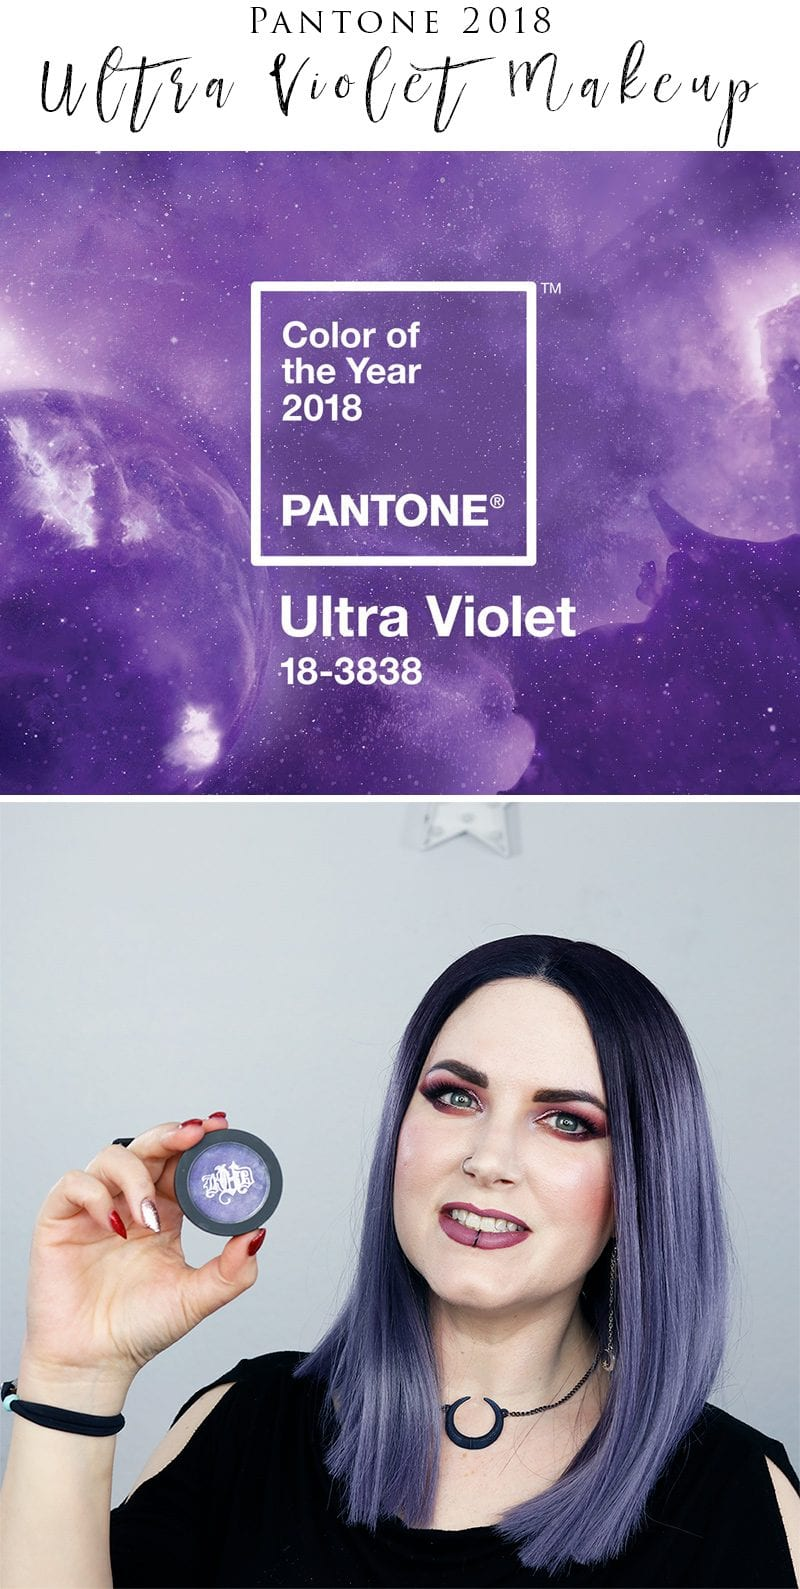 Pantone Color of the Year 2018 Makeup - The Pantone Color of 2018 is Ultra Violet Purple. I LOVE Purple! So I am sharing my favorite purple eyeshadows, blushes, nail polishes, lipsticks, lipglosses, lip pencils, eye pencils and more.